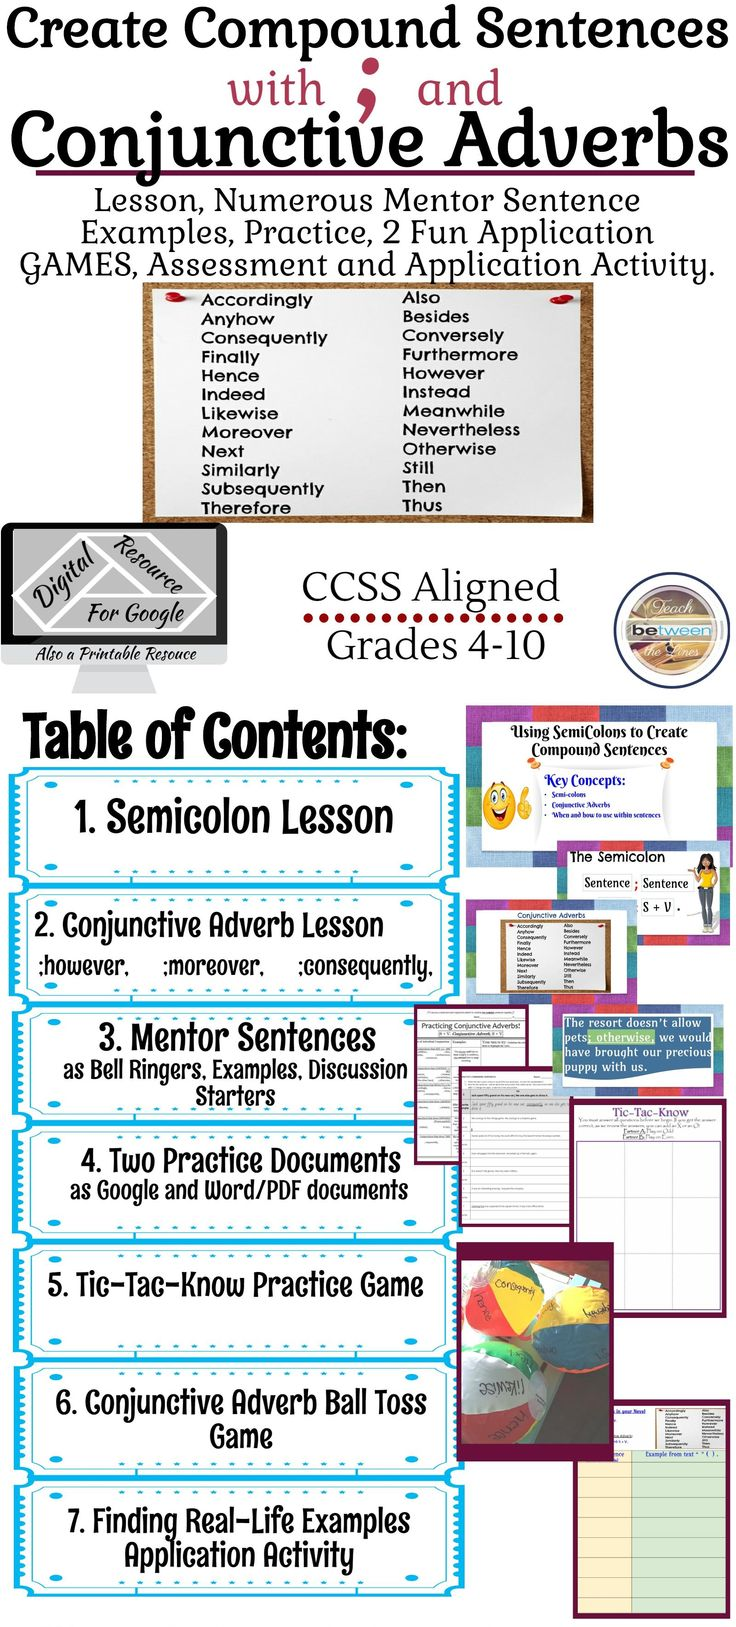 Teach your students how to create compound sentences with semicolons, and compound sentences with semicolons and conjunctive adverbs! This Lesson will provide your students with explicit explanations using mentor sentences, two fun games, two great practice activities, application activities, and a potential summative assessment!